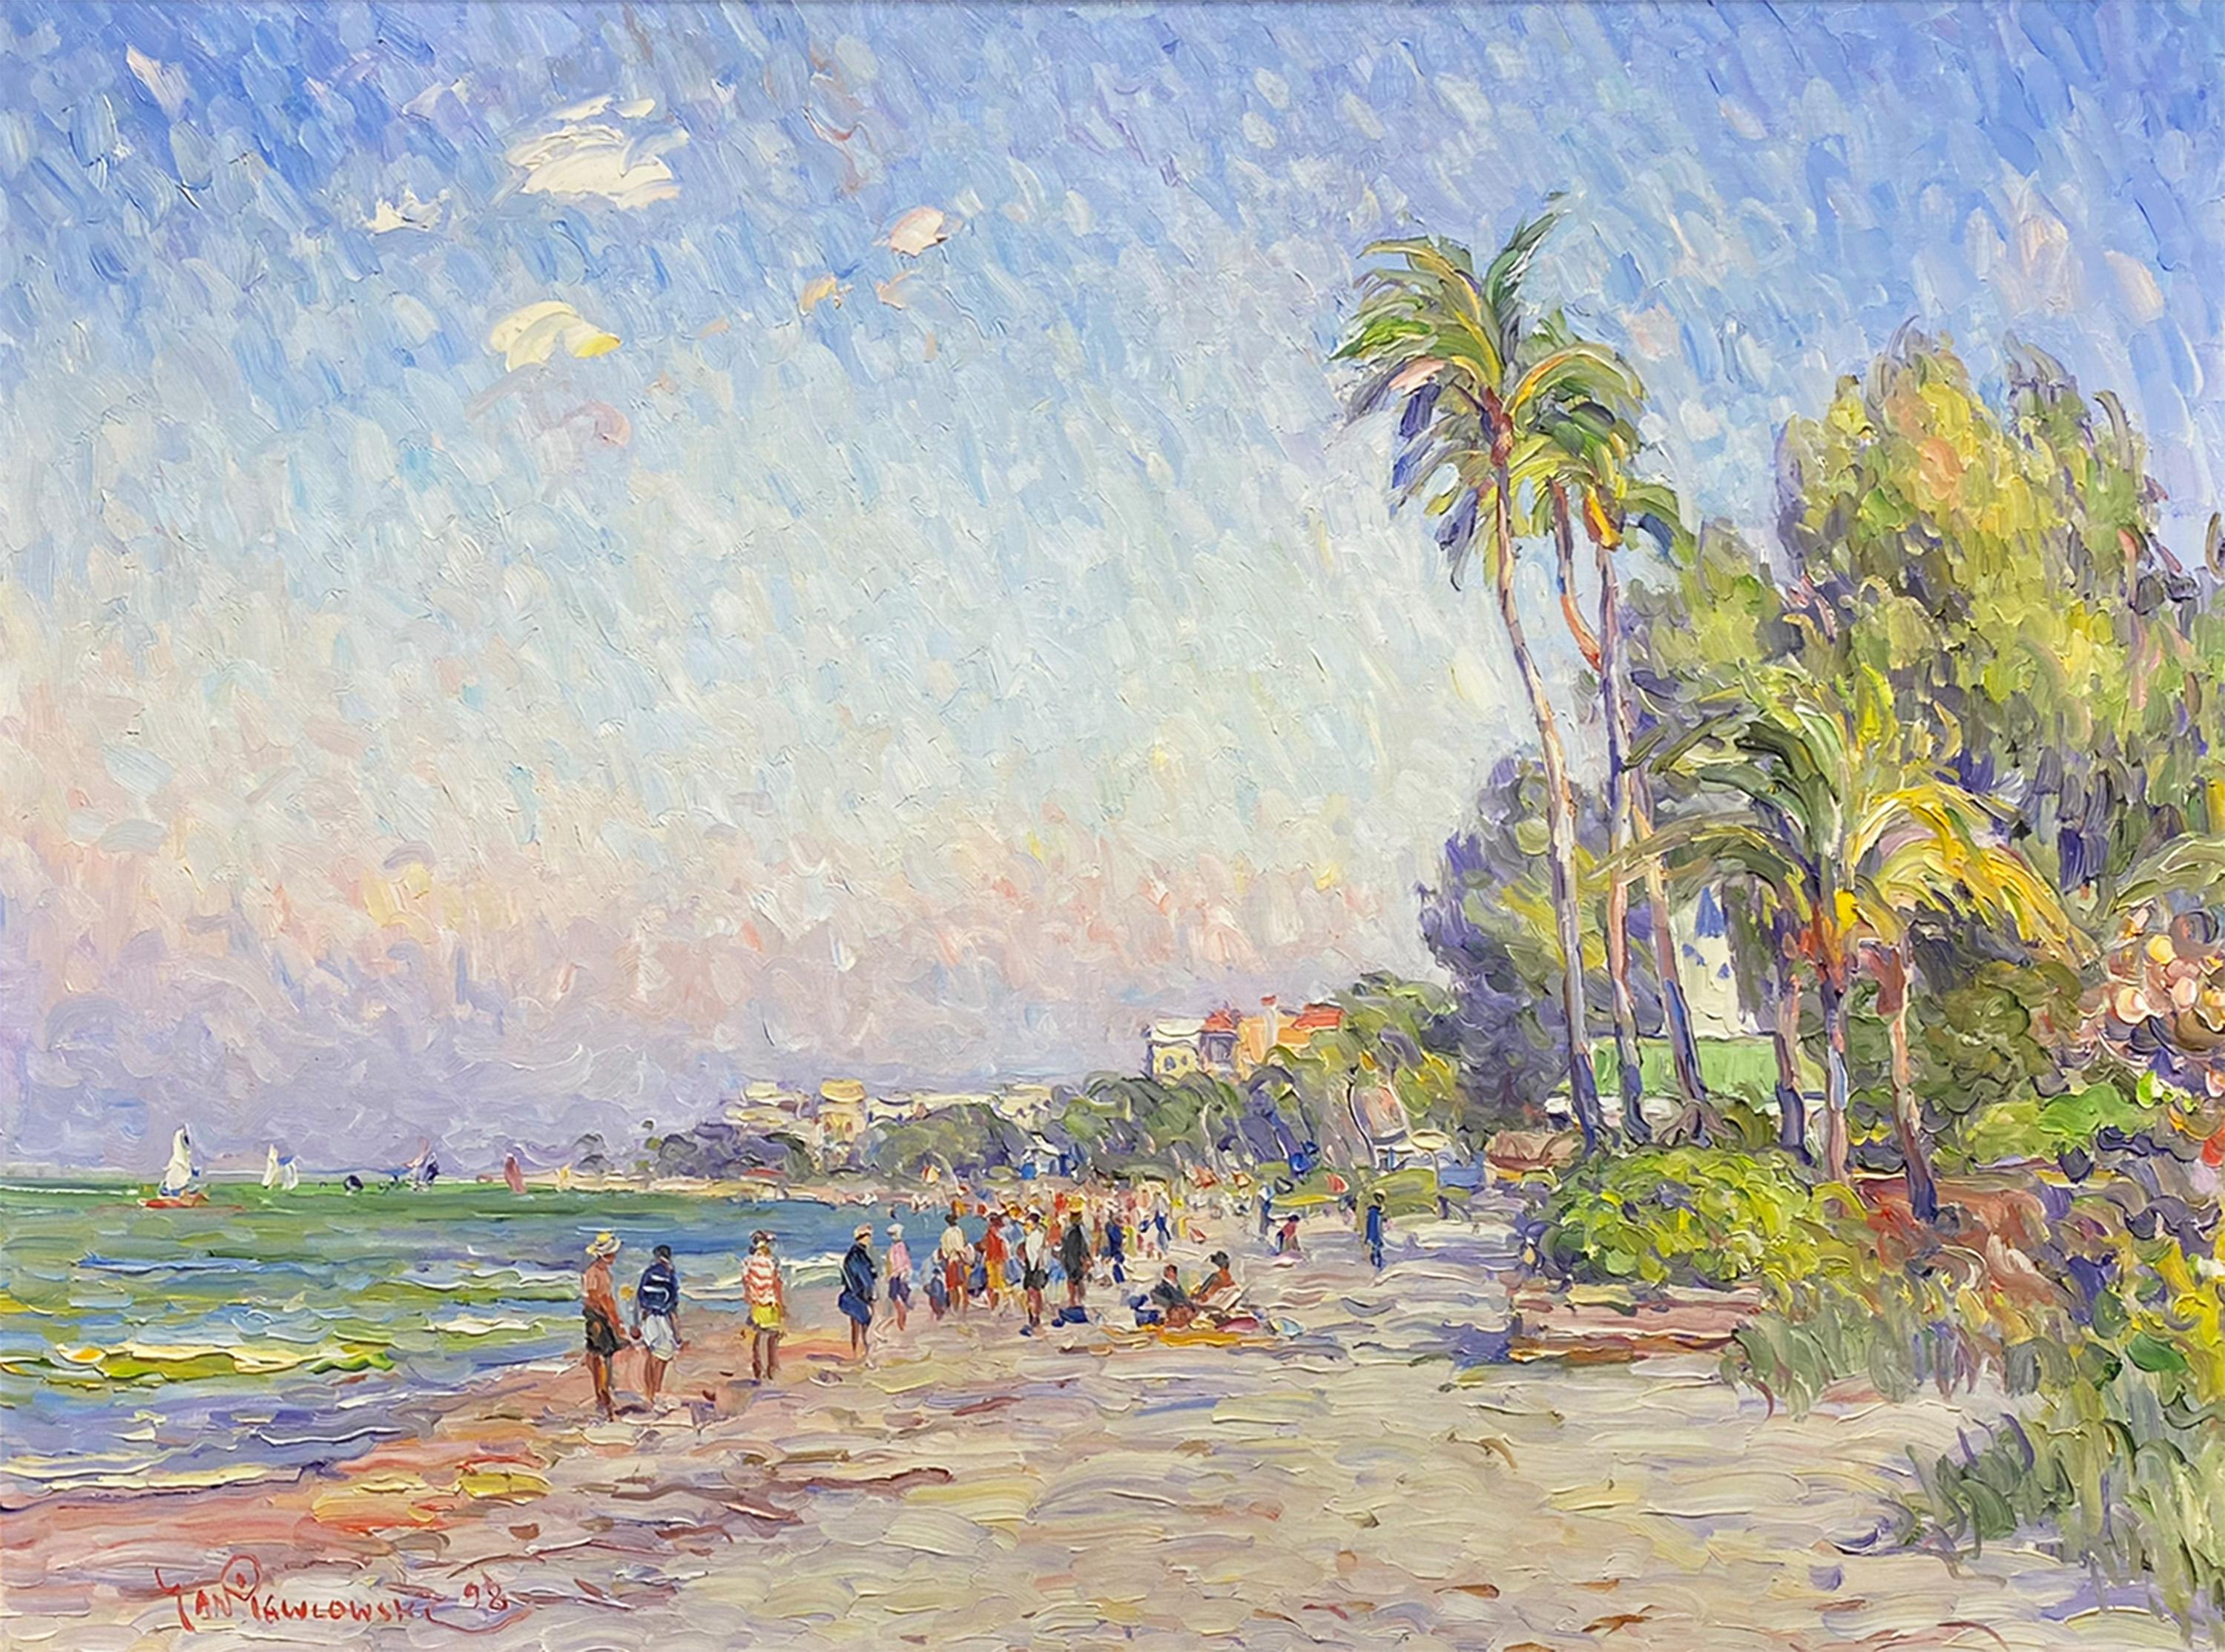 A Day at the Beach, Florida